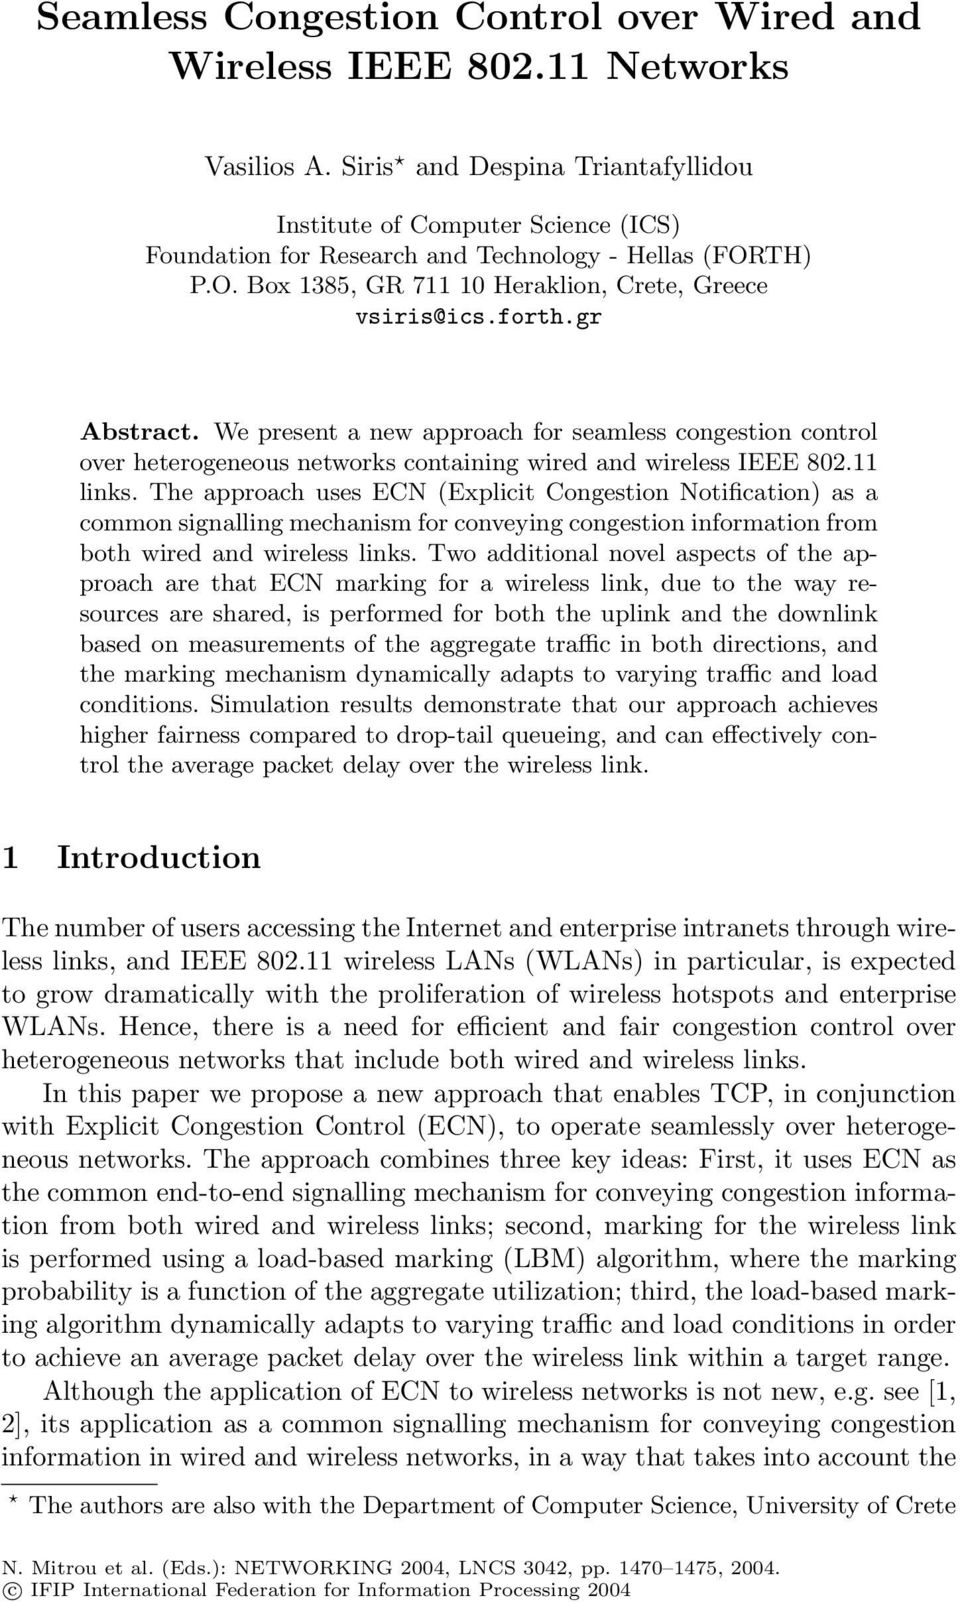 gr Abstract. We present a new approach for seamless congestion control over heterogeneous networks containing wired and wireless IEEE 802.11 links.